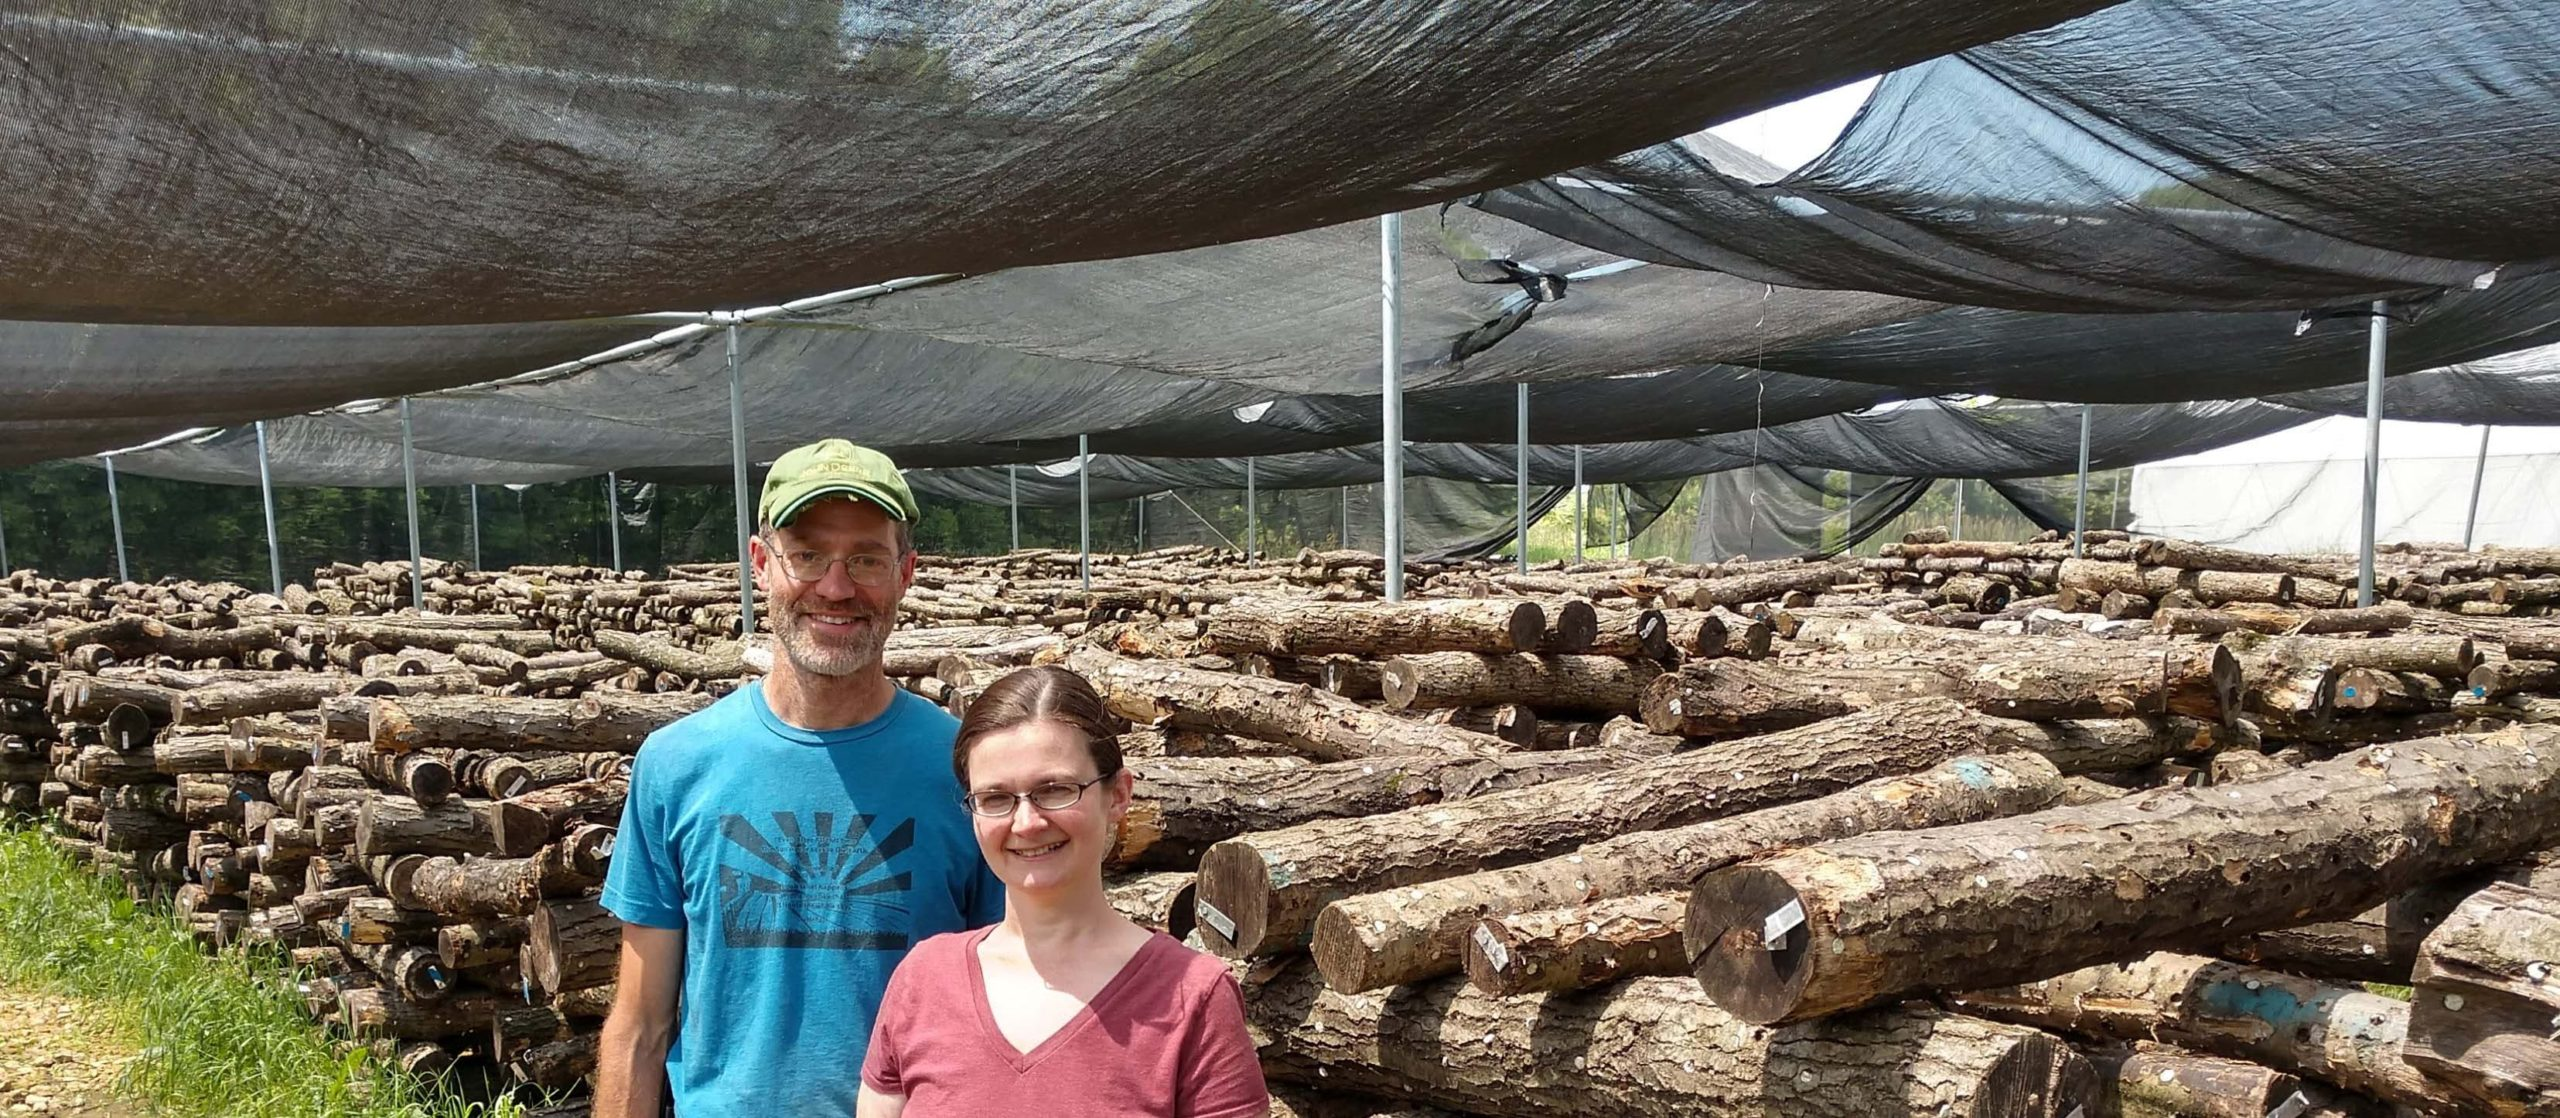 Aimee and Jeremy Northwood Mushrooms in shade structure